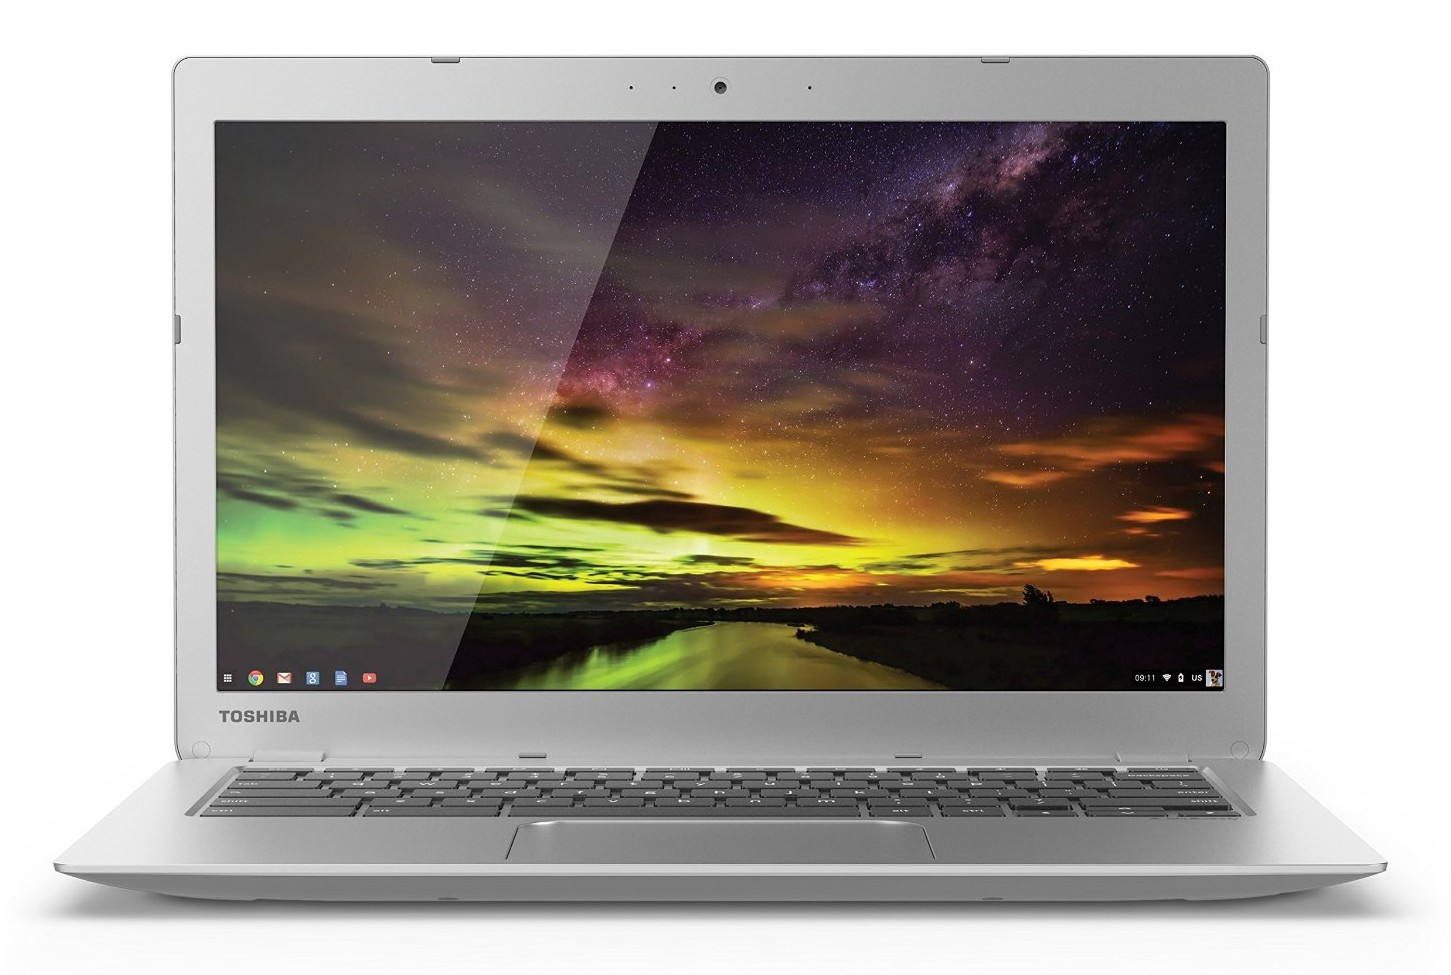 Toshiba Chromebook 2 Full HD IPS Review